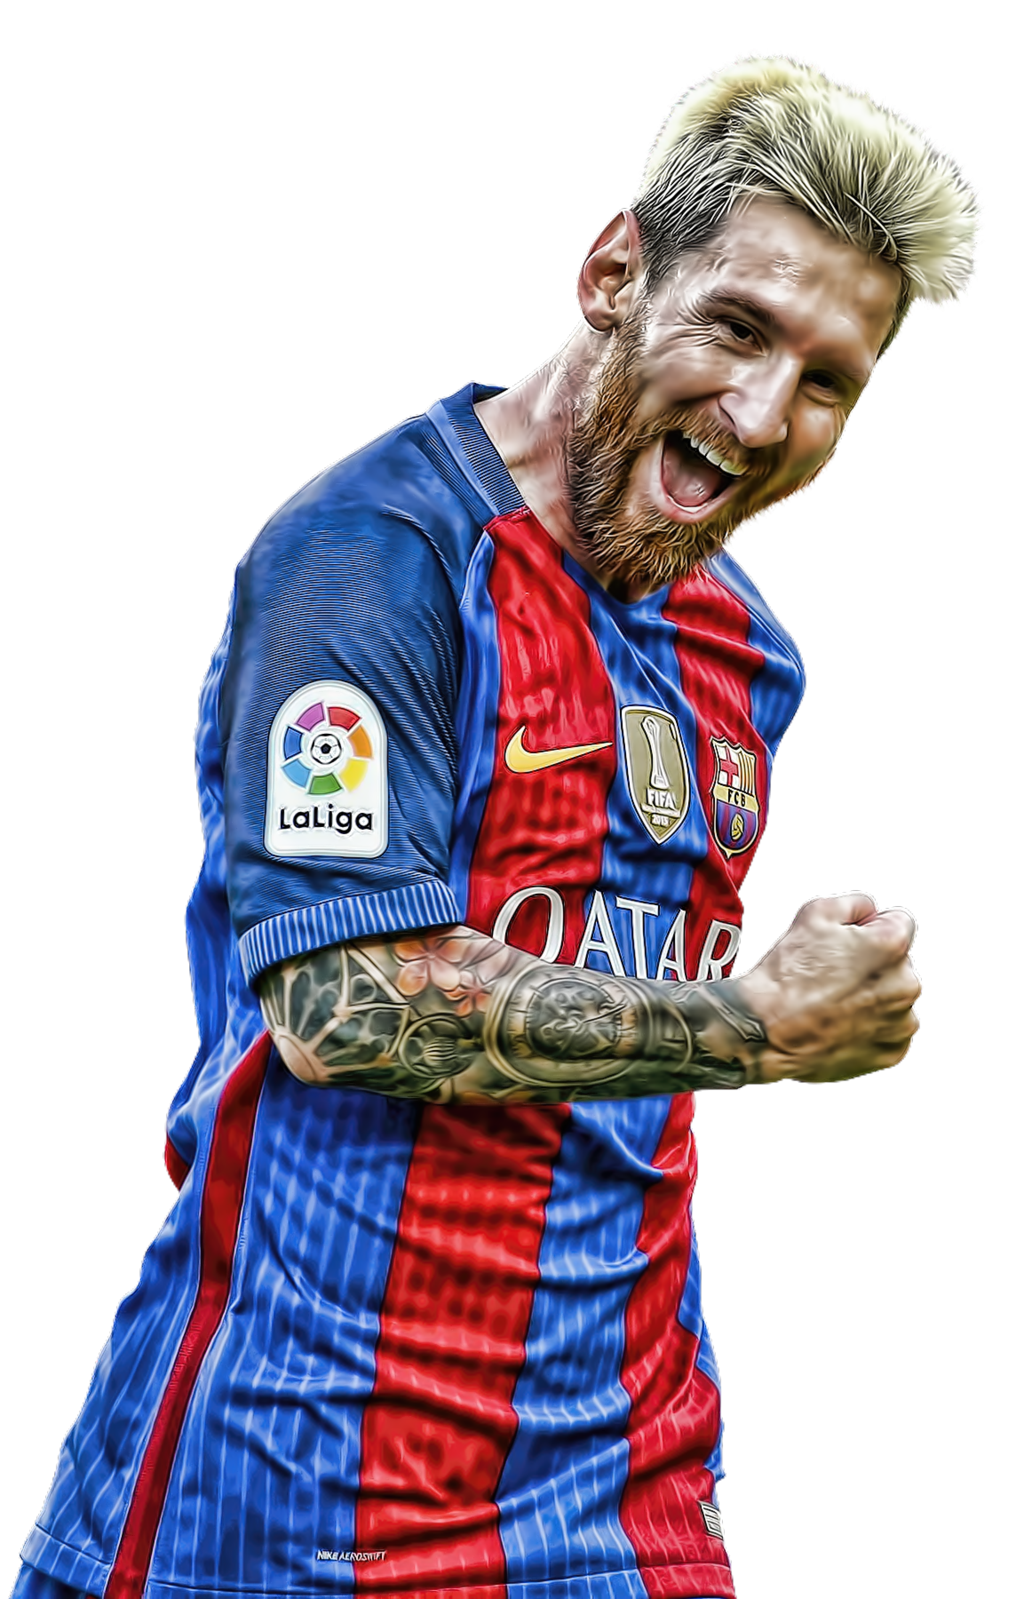 Messi png. Lionel happy smile fc